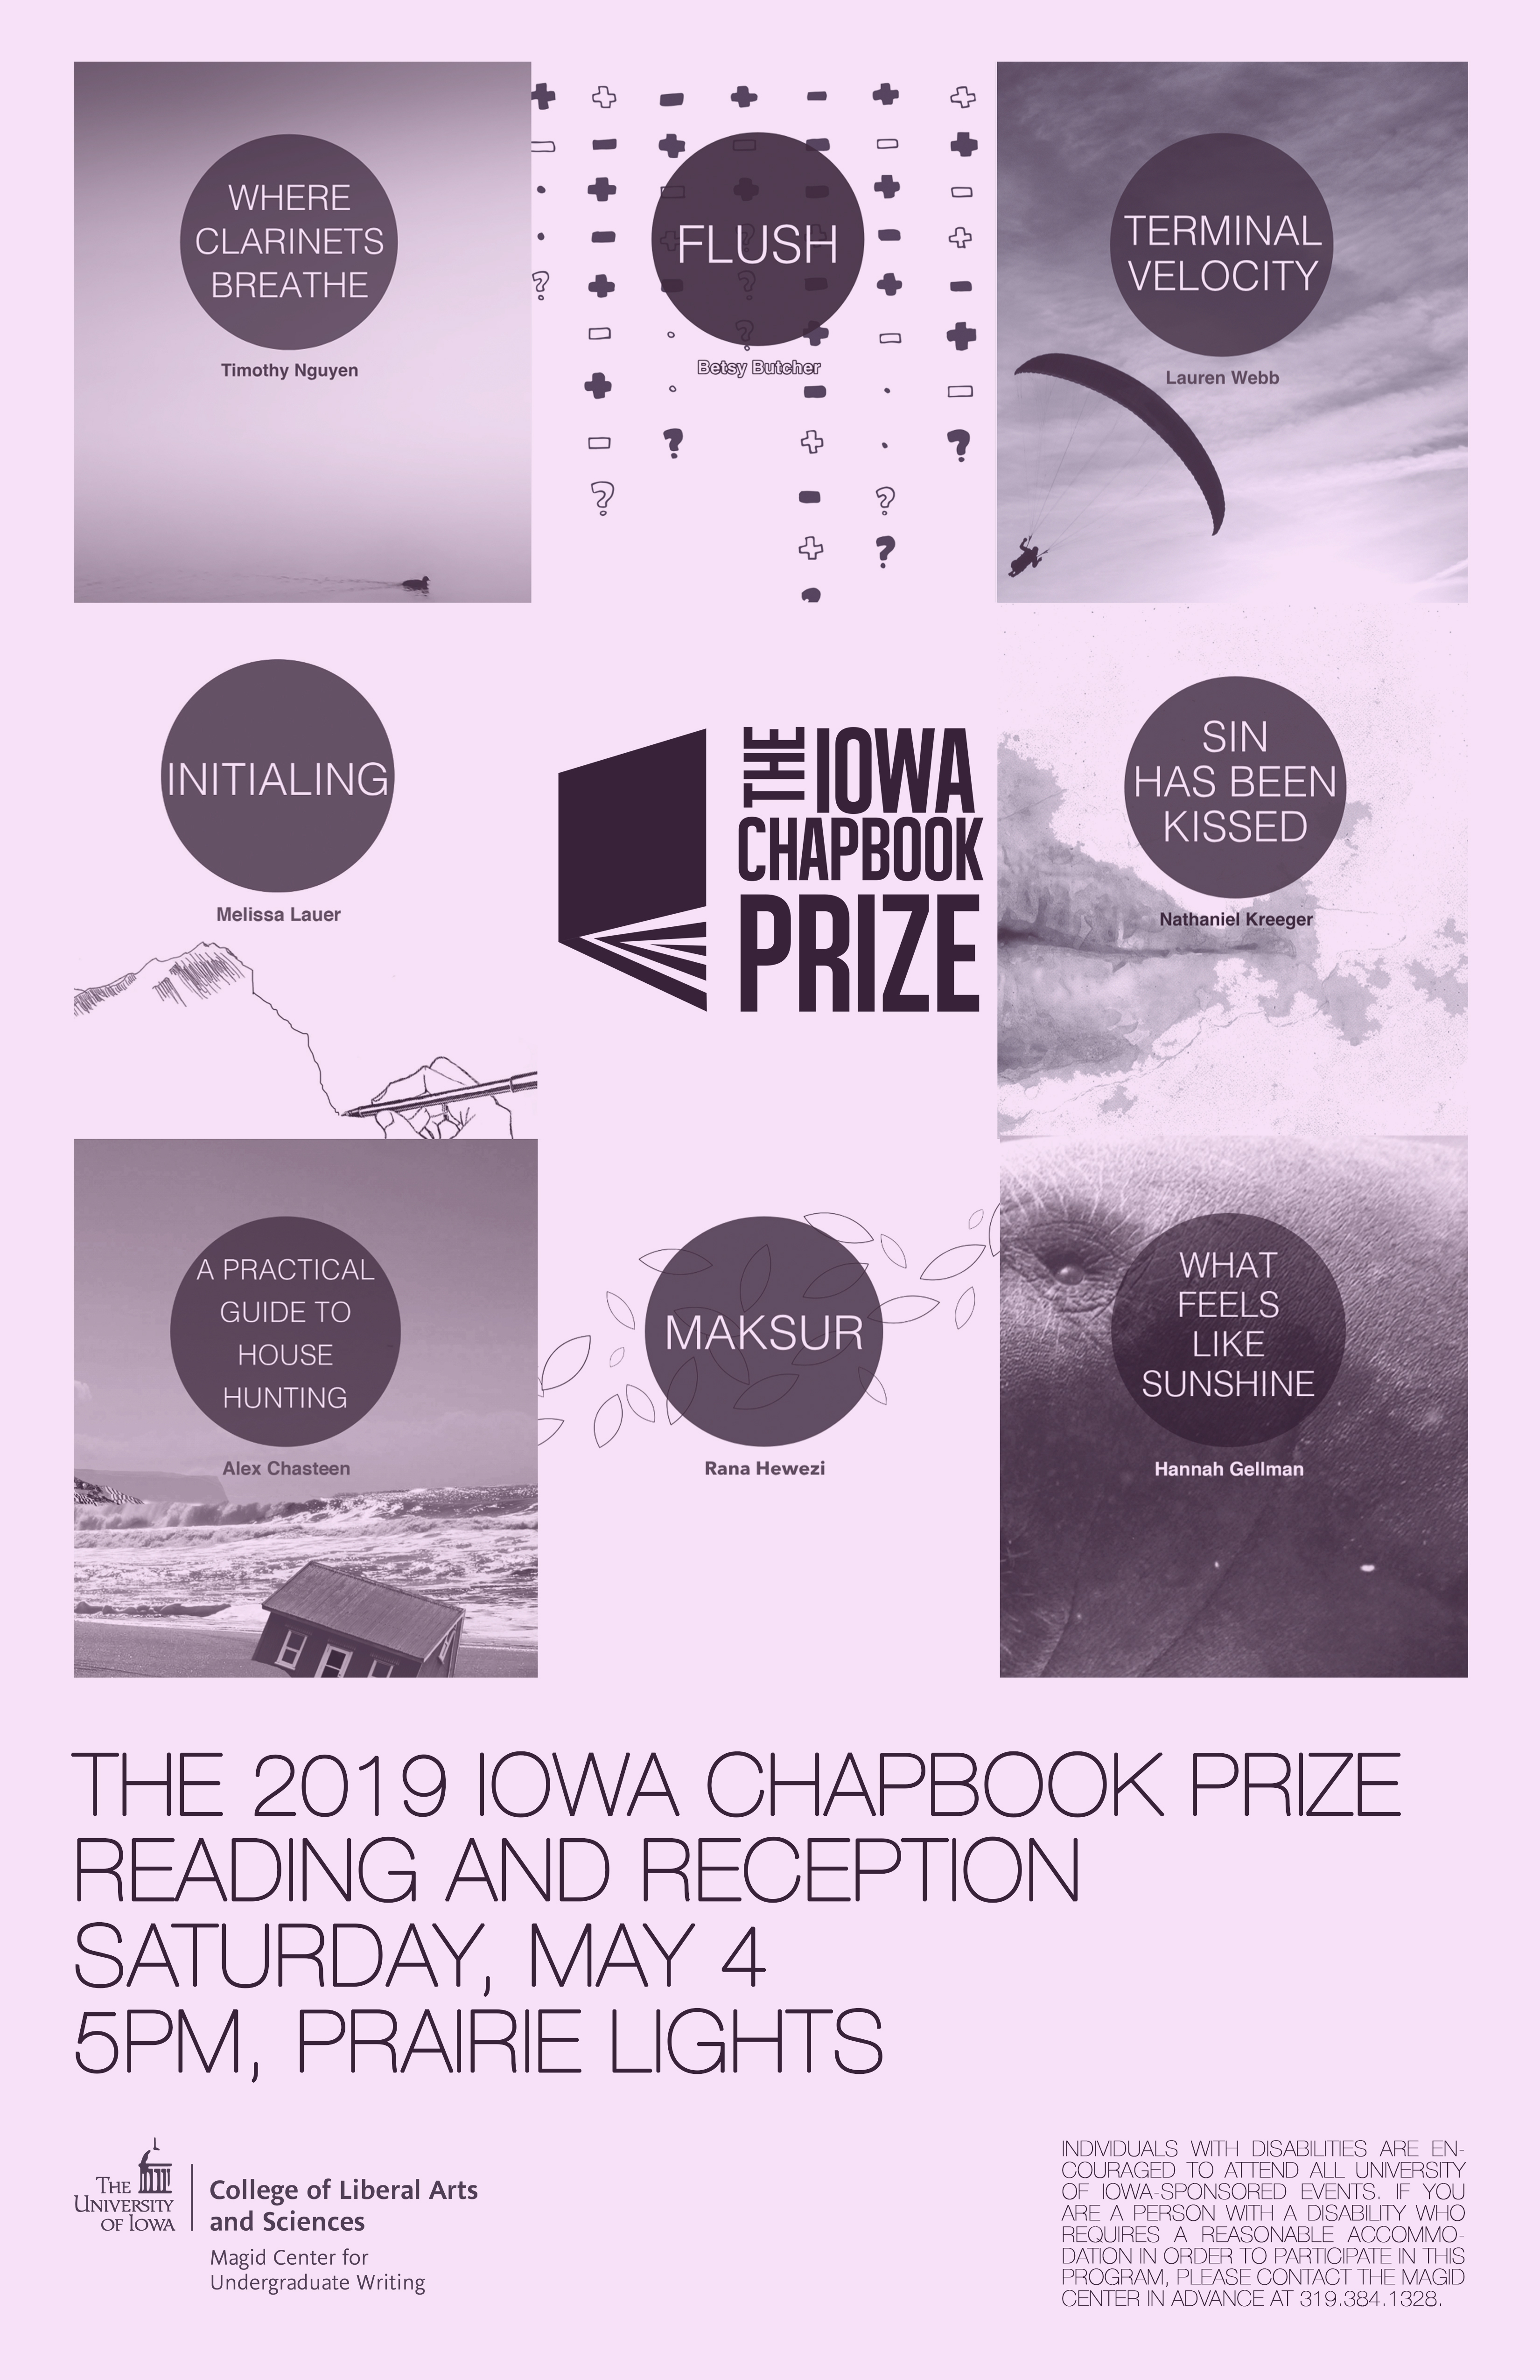 2019 Iowa Chapbook Prize Reading and Reception